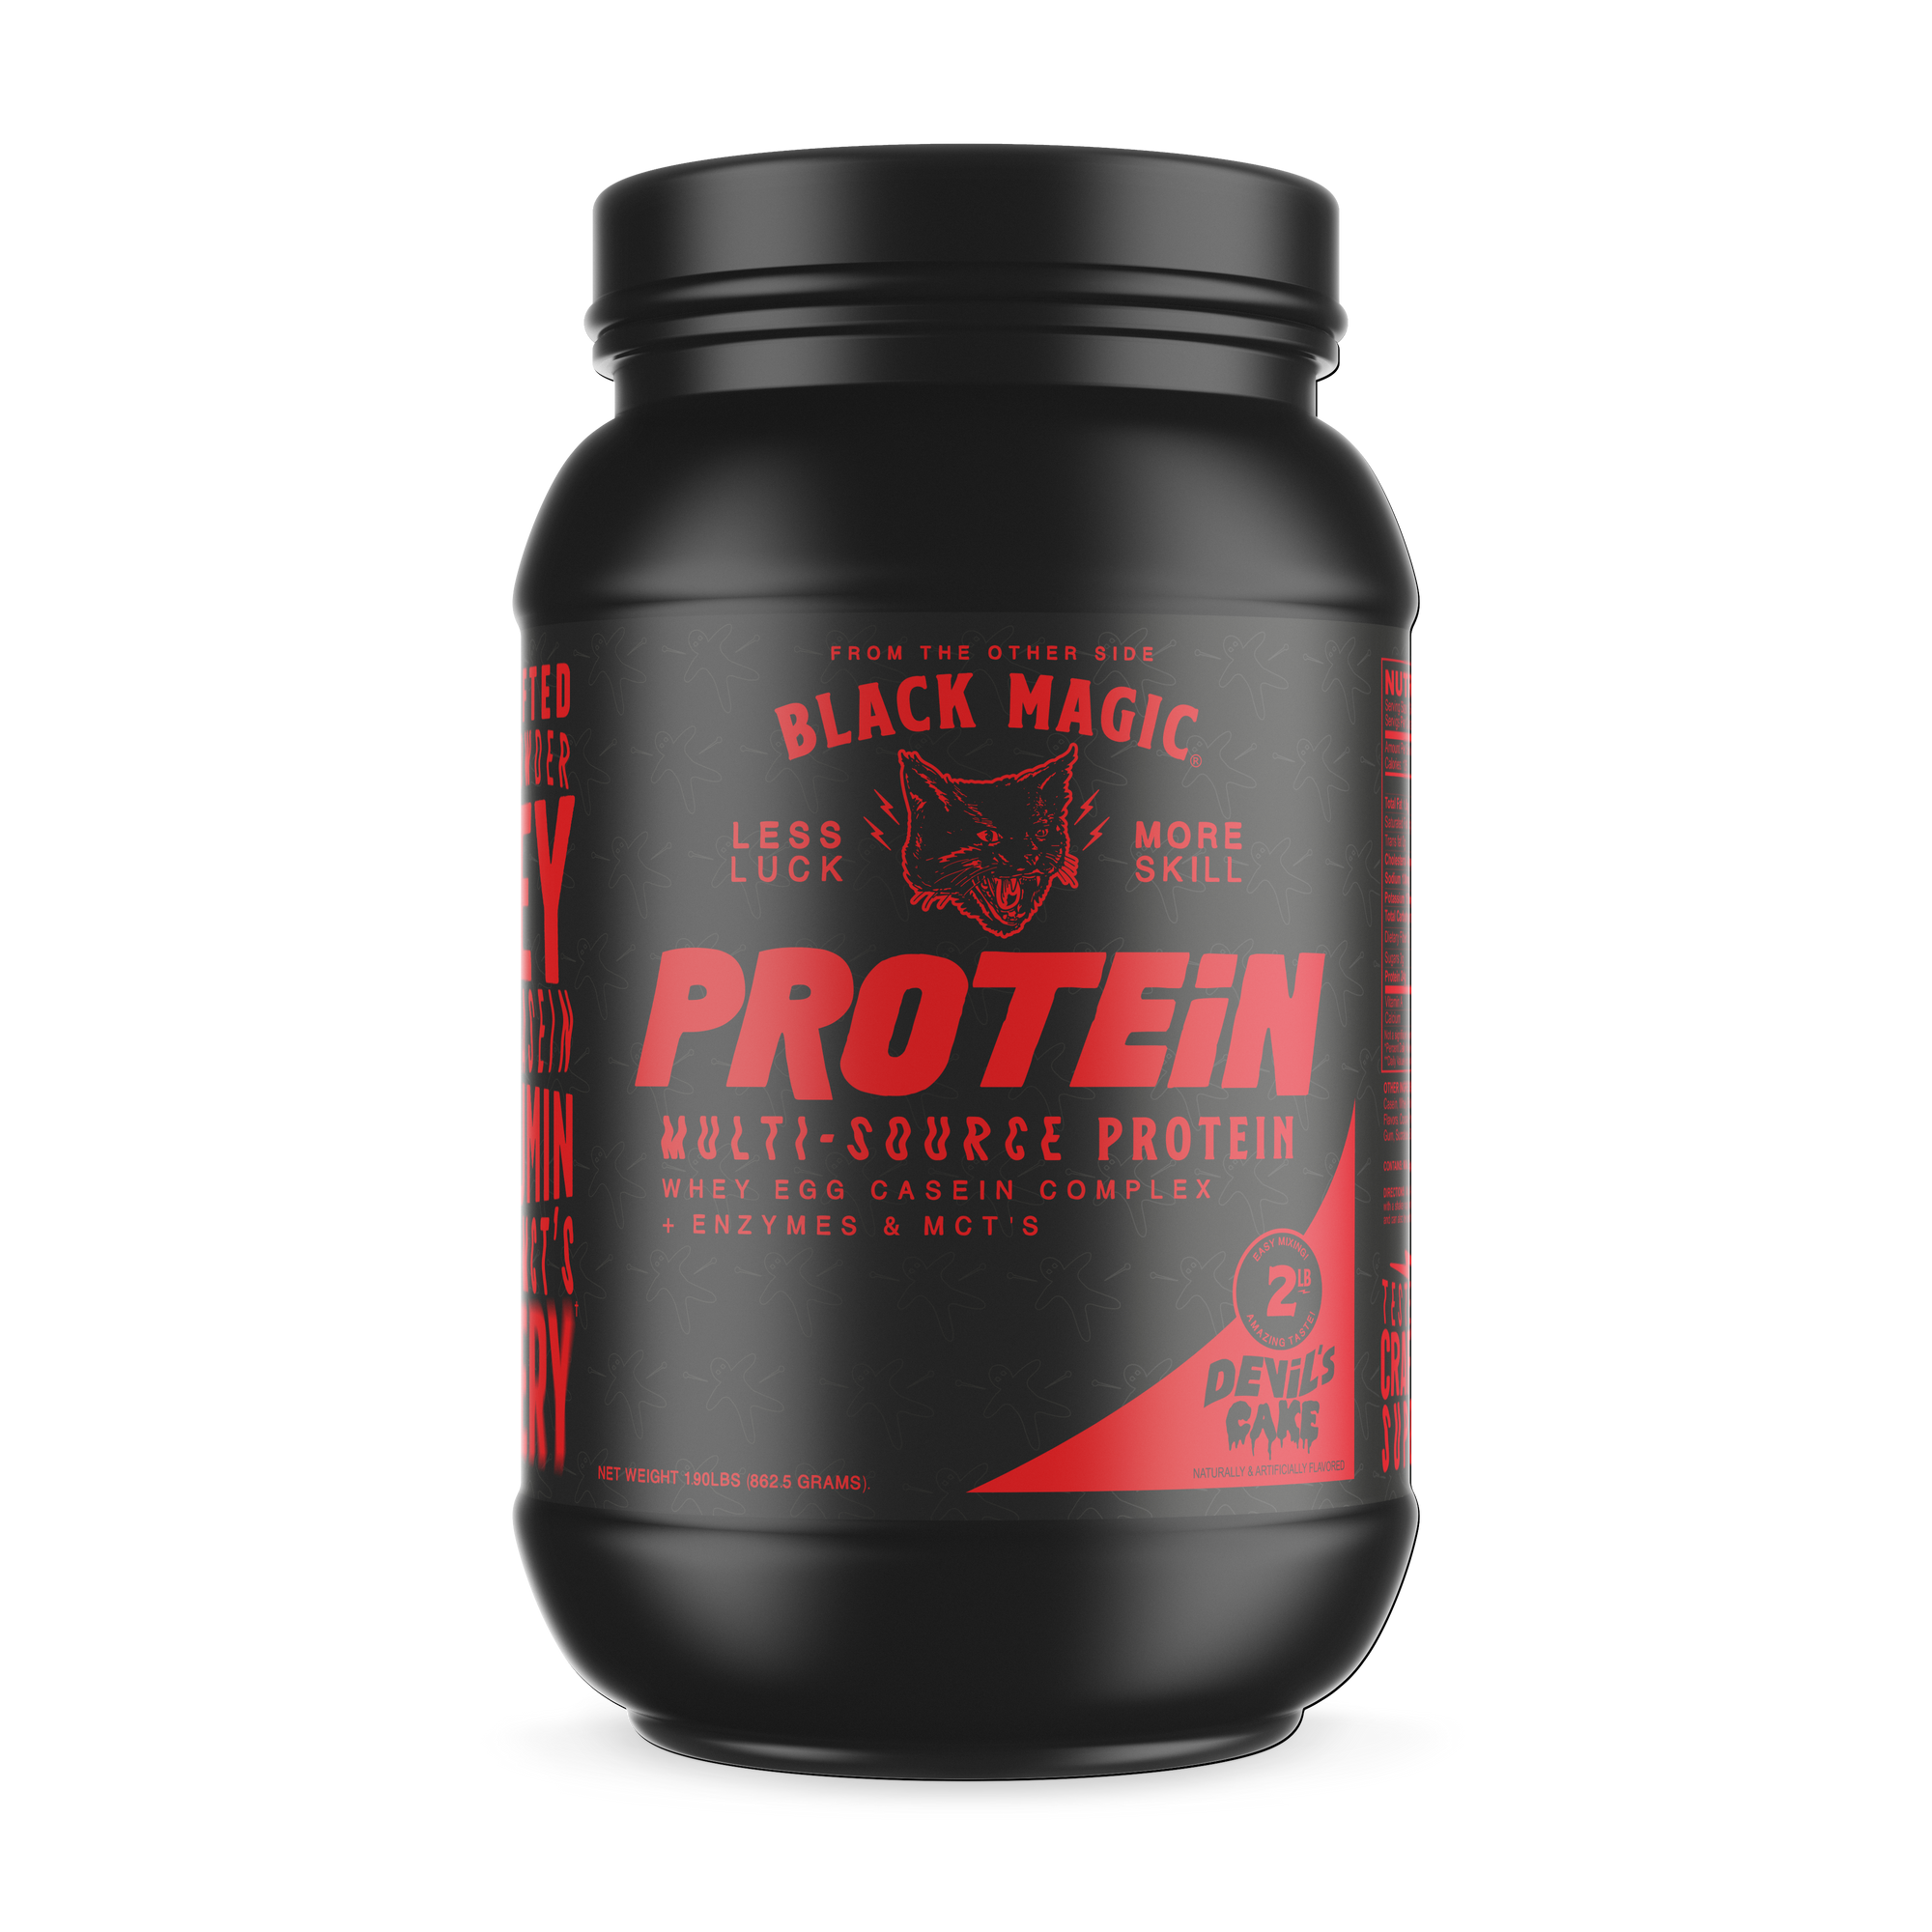 Limited Edition Devils Cake Black Magic Supply Handcrafted Multi-Source Protein 2lb